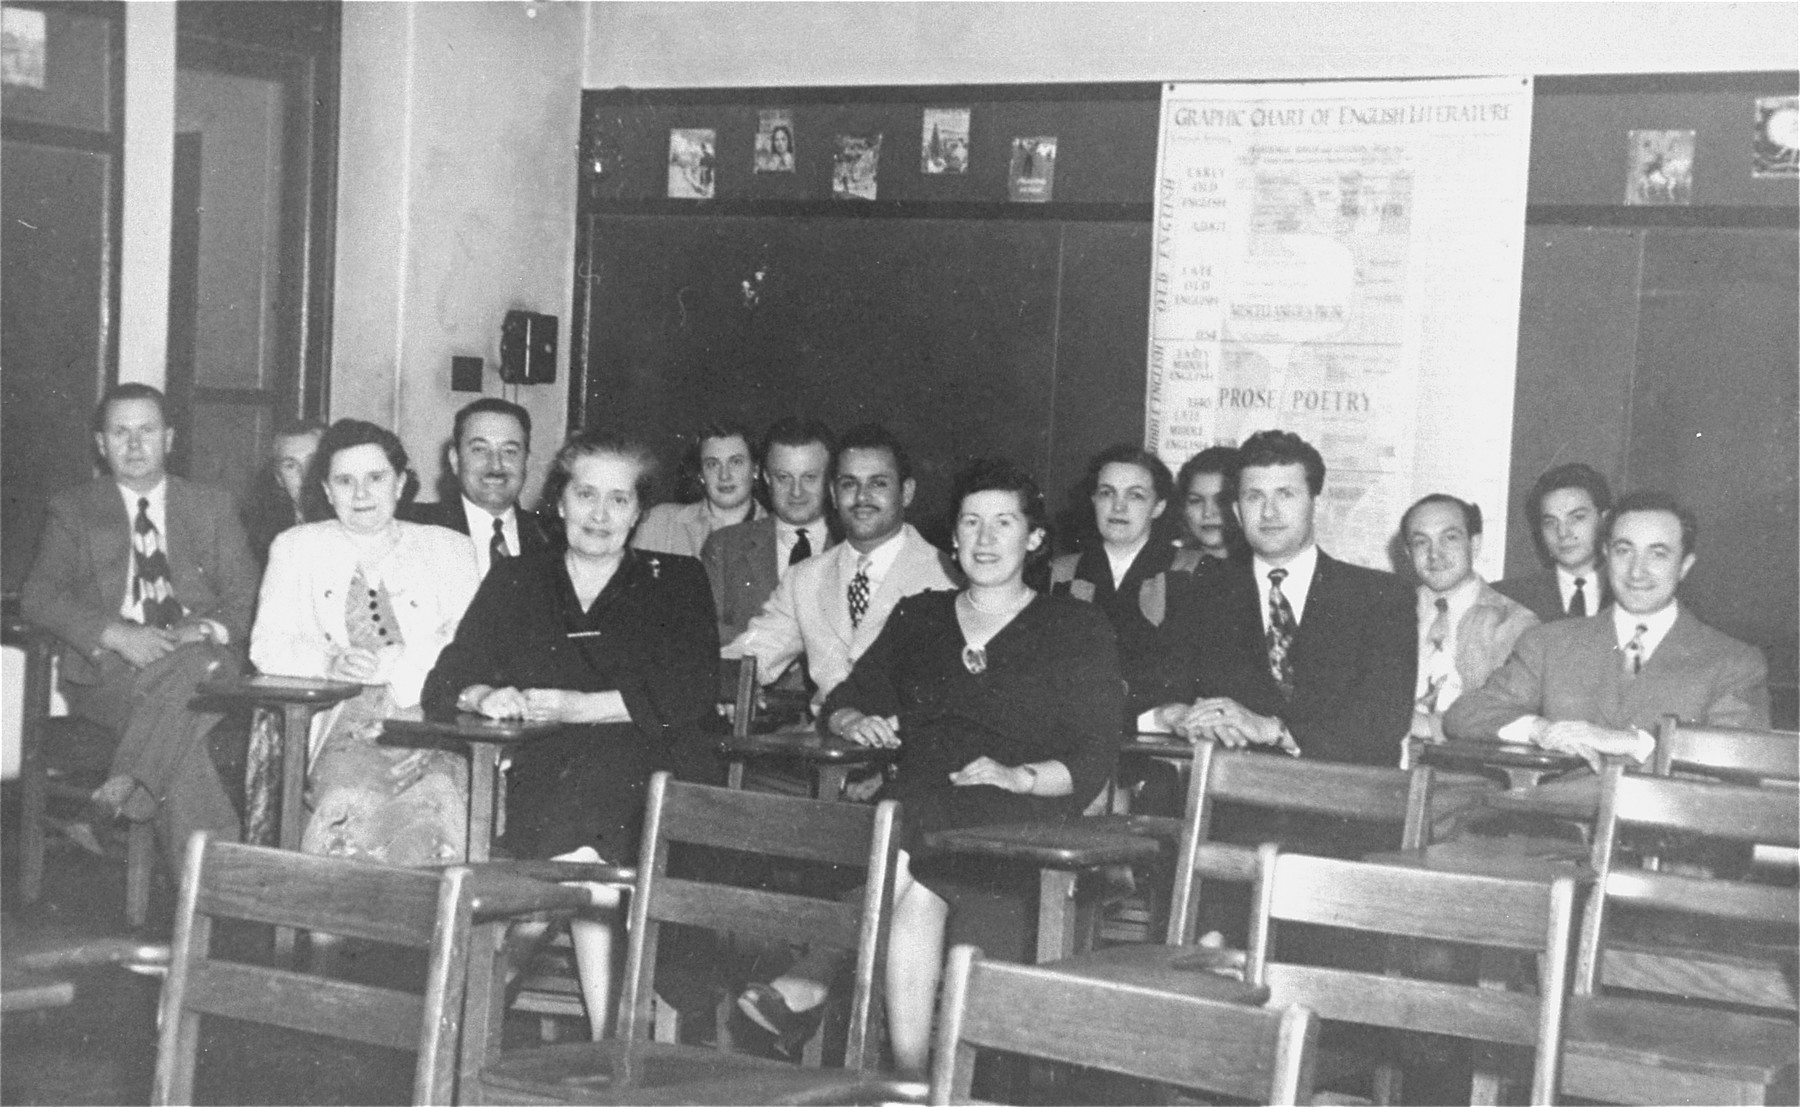 The donor, Frieda  B. Radasky, with fellow new immigrants in class in the United States.  Frieda ( Frimit) Bursztyn Radaskyin, originally from Warsaw, lived in the Warsaw Ghetto and was incarcerated in Paviak Prison during 1943.  She was transported to German factories, labor and concentration camps in Skarzysko, Kamiene, Czestochowa, Ravensbrueck, Gross-Rosen, and Turkheim-Dachau from where she was liberated. She married a fellow survivor still in Turkheim DP camp, and together they emigrated to the USA in 1949.